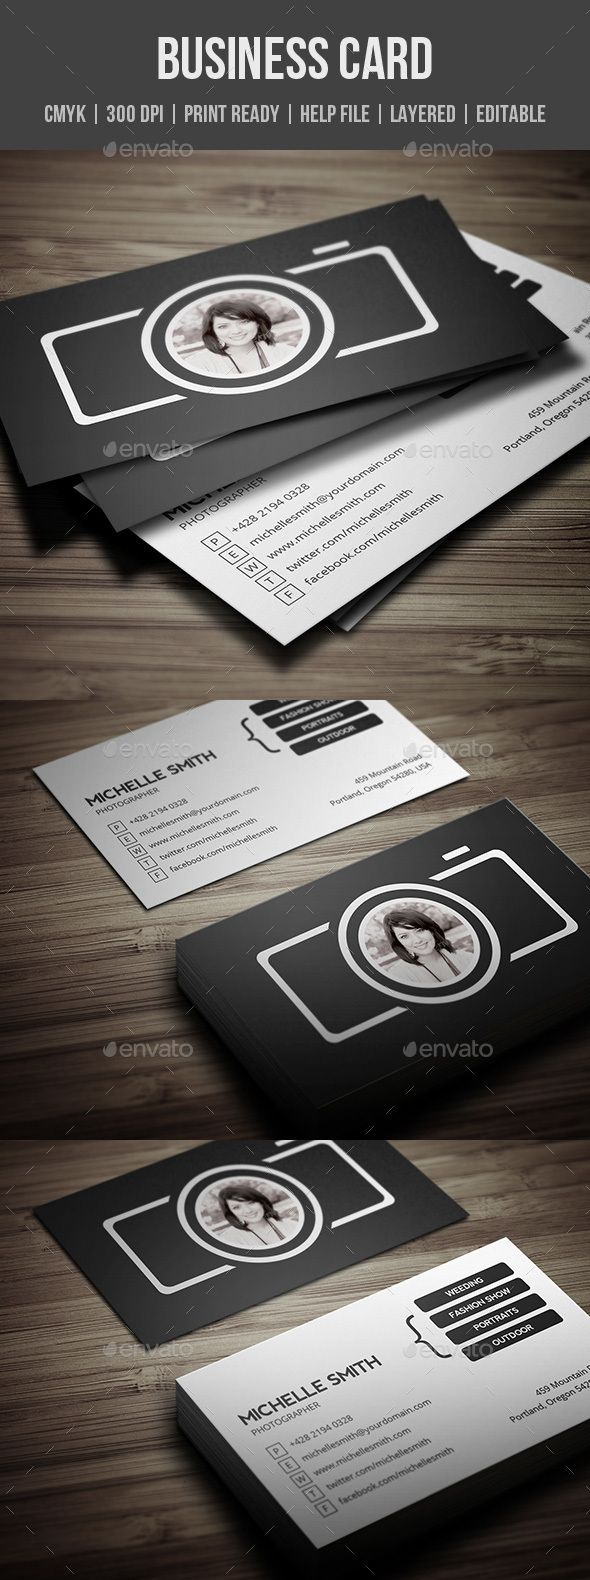 Photographer Business Card | Photographer business cards, Business ...